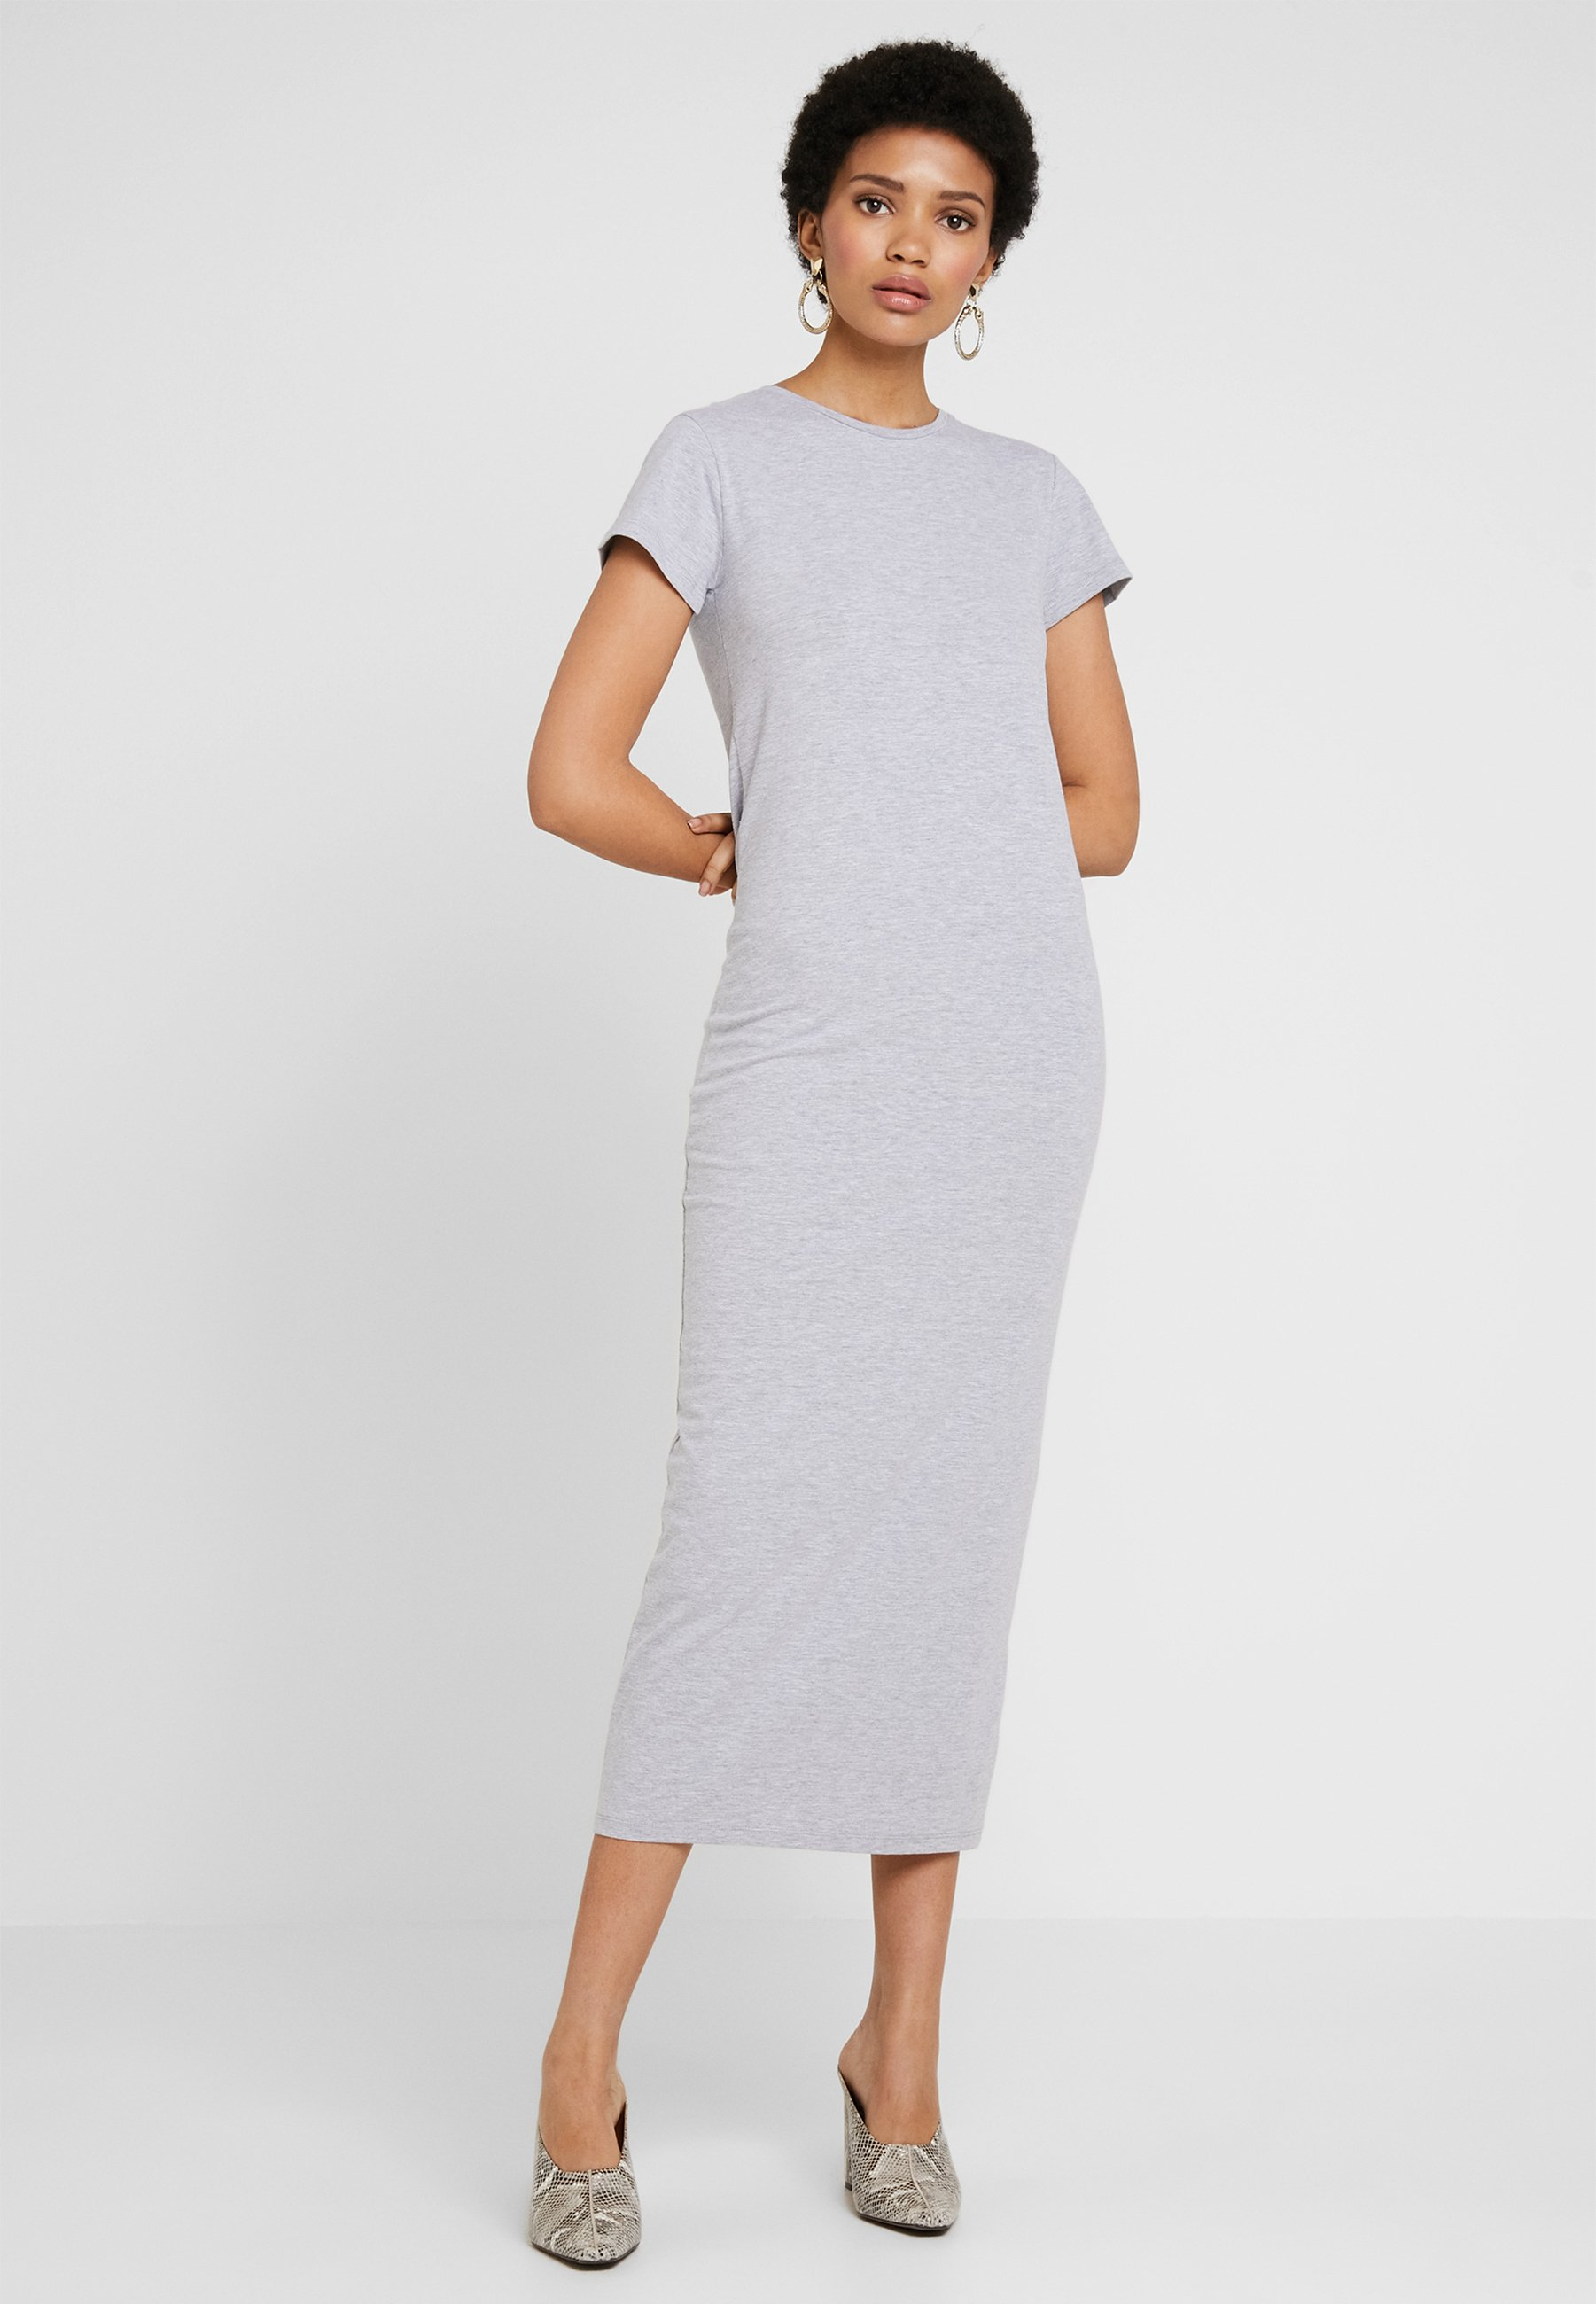 Melange By Nelly DressRobe Longue Grey Mélange Maxi Tee Nly yvbf6gY7